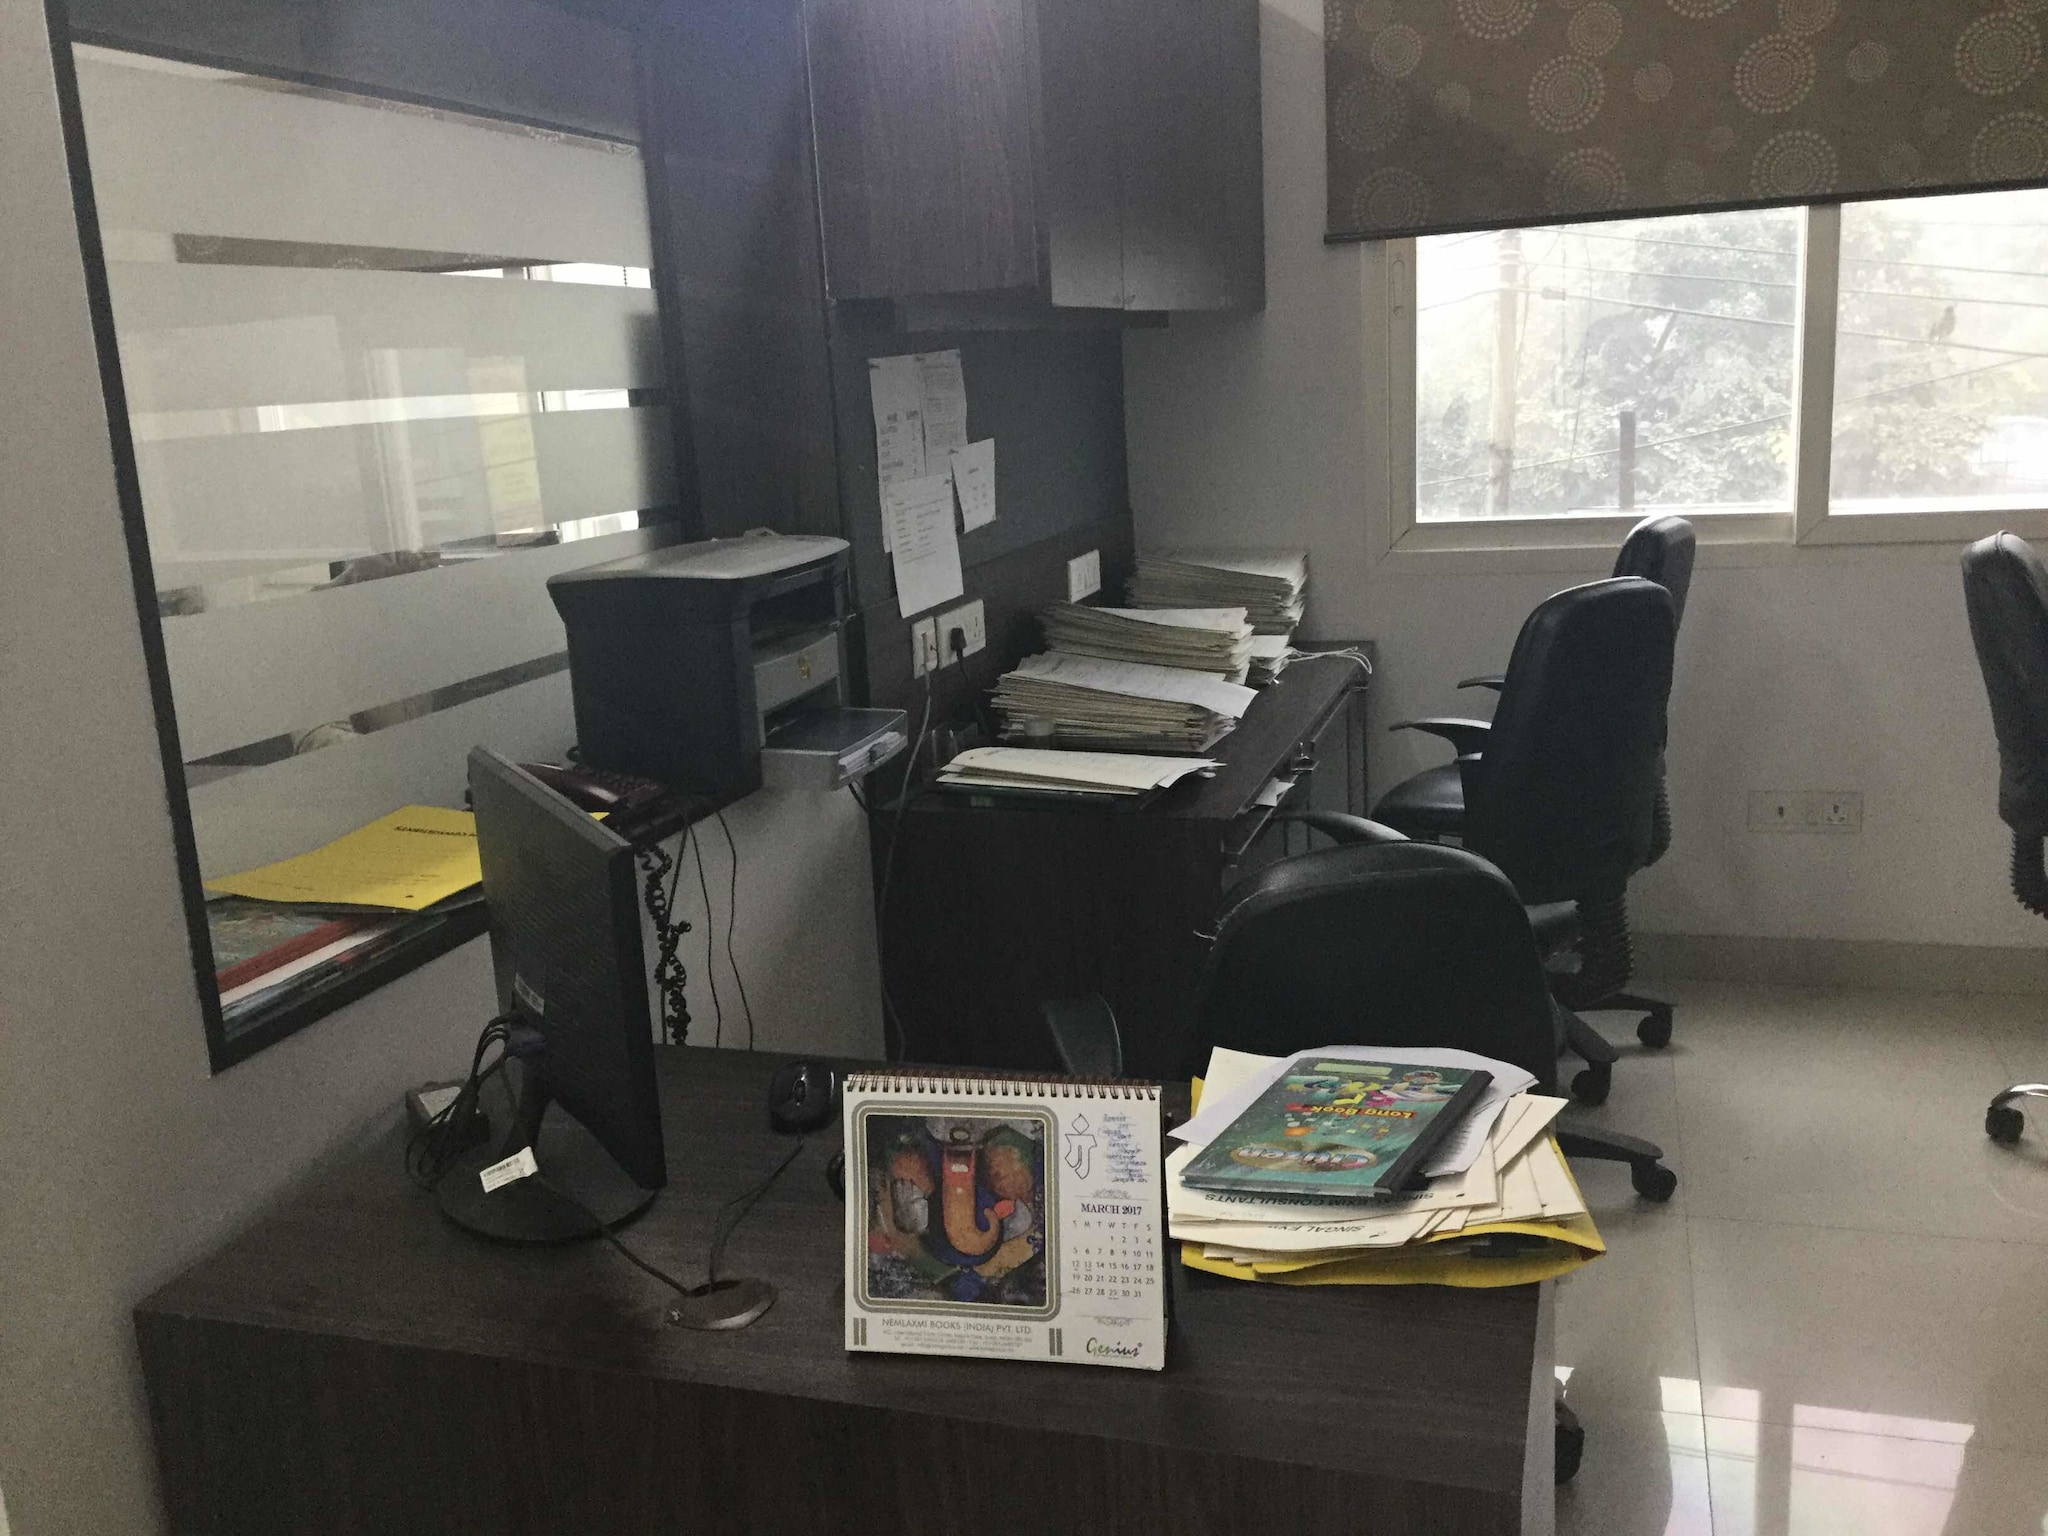 wallpapers office delhi. Contemporary Wallpapers Wall Paper Contractors Delhi Intended Wallpapers Office O